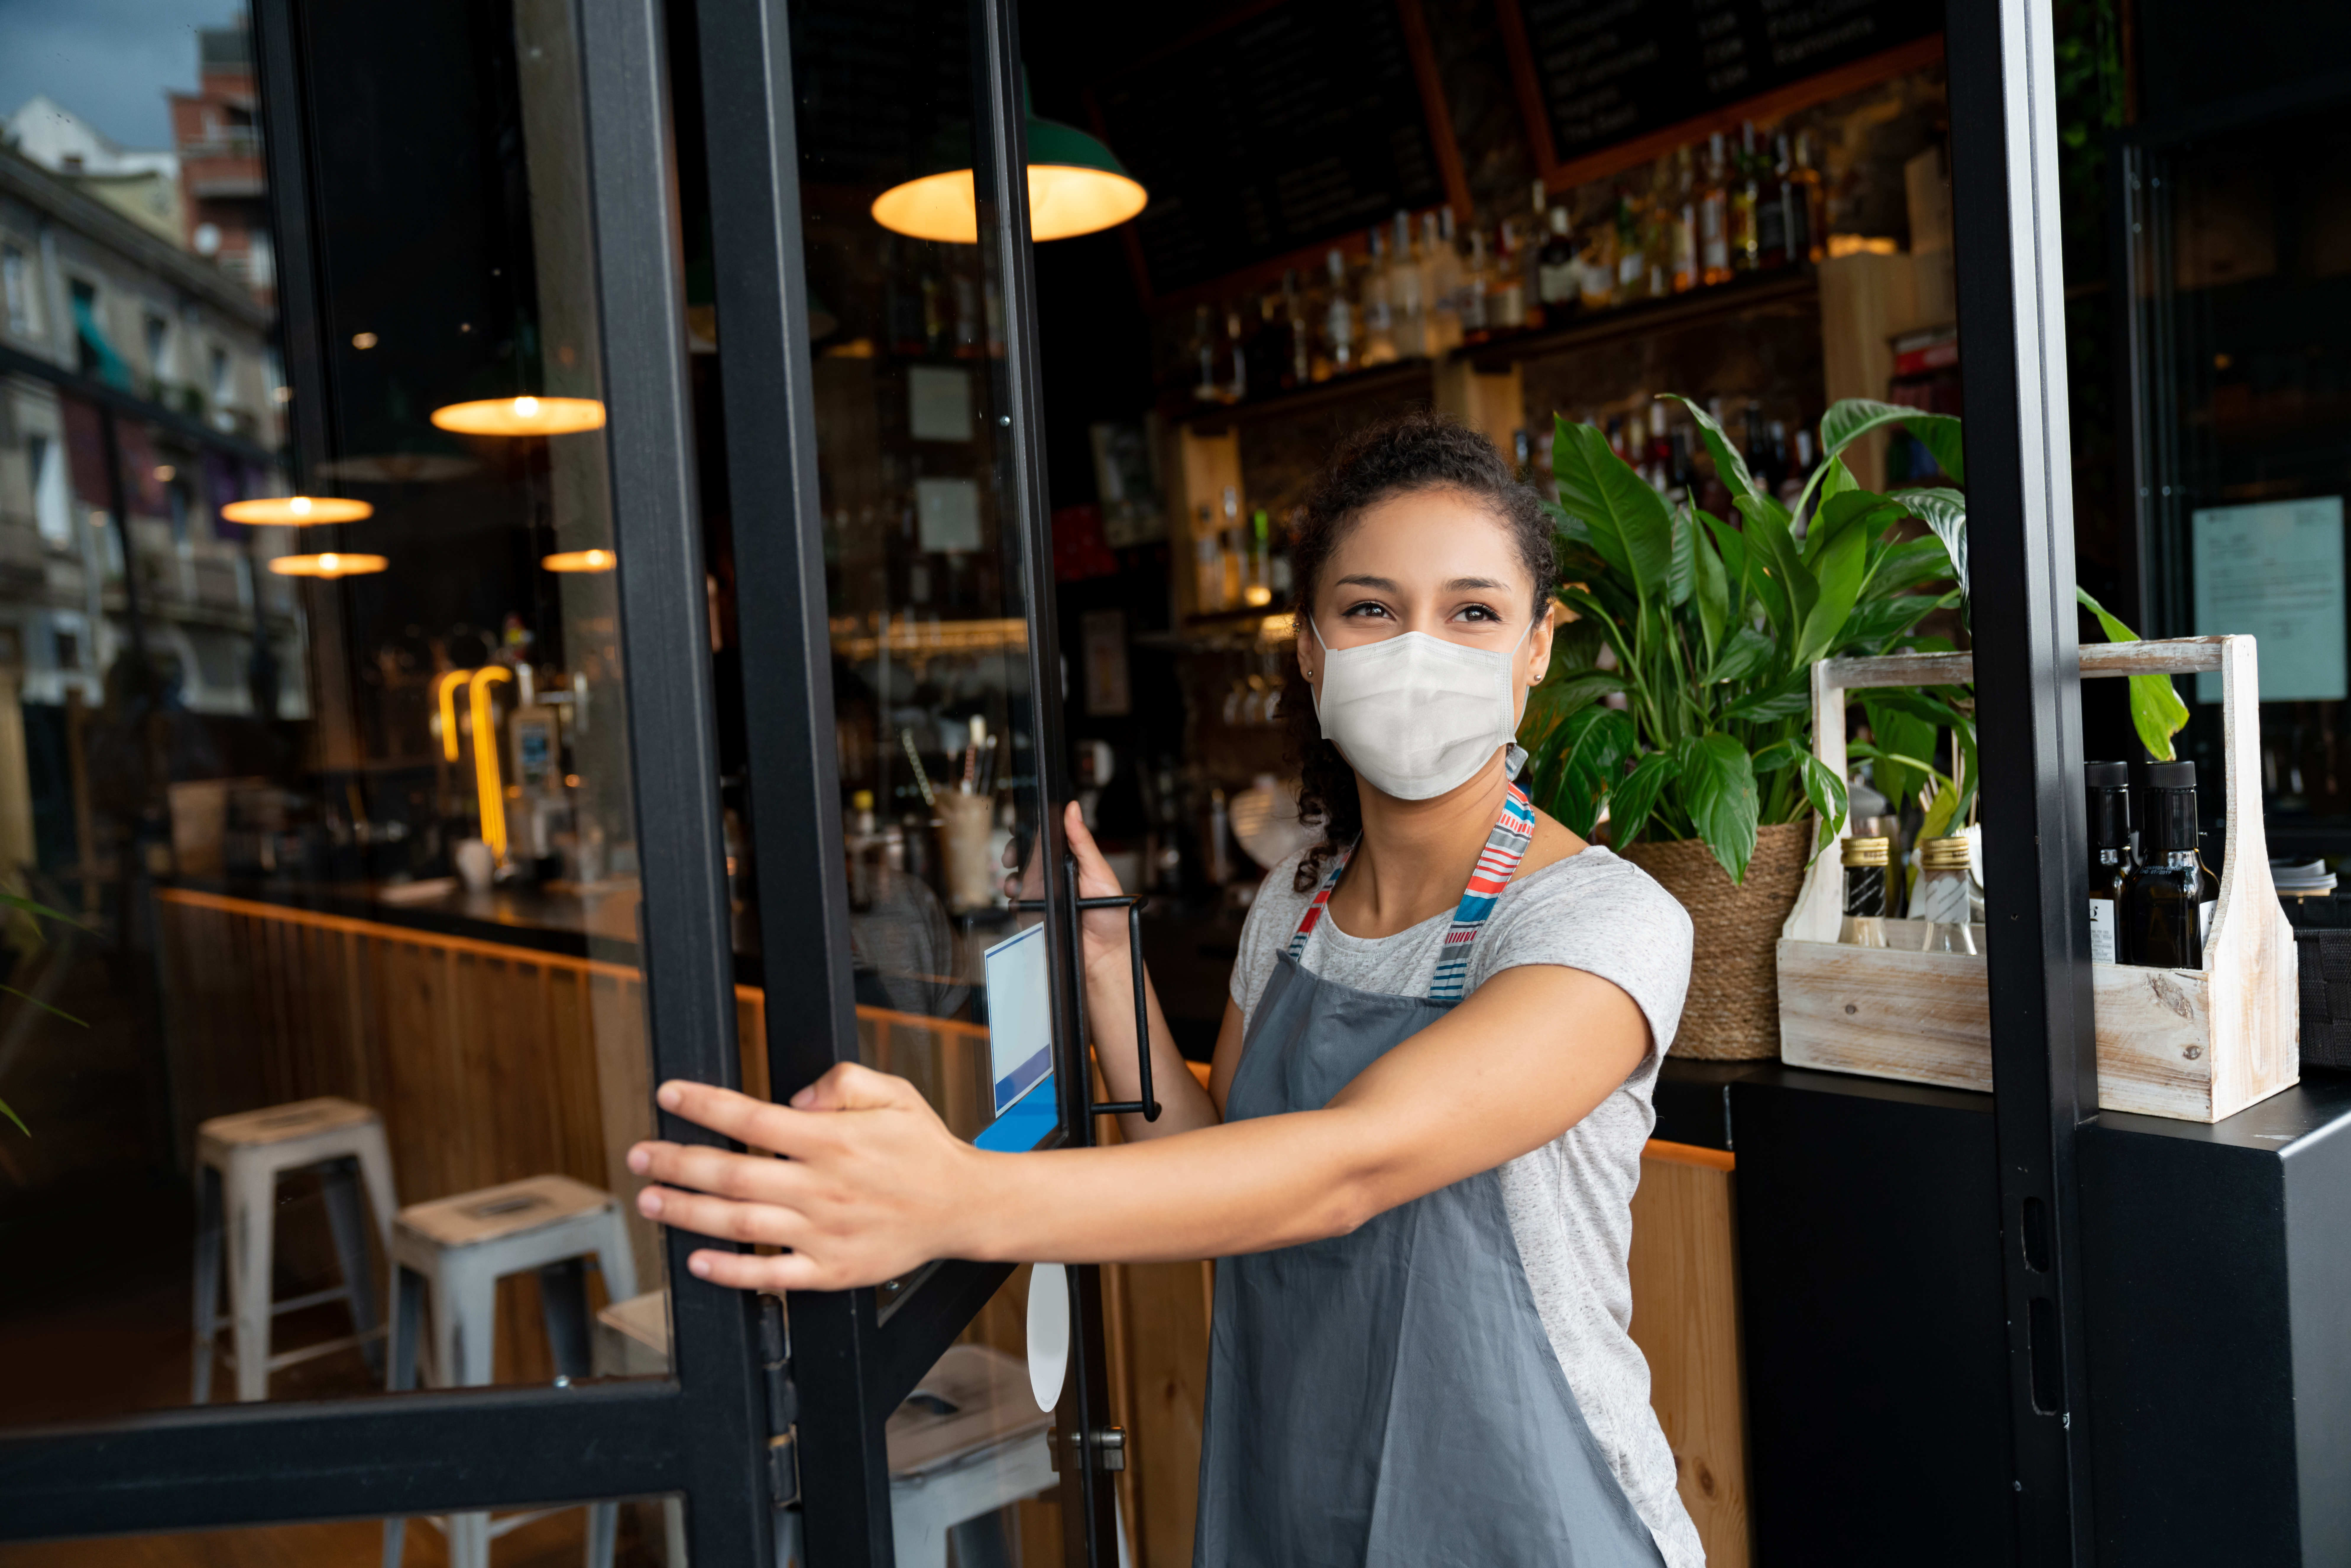 Masked woman reopening small business